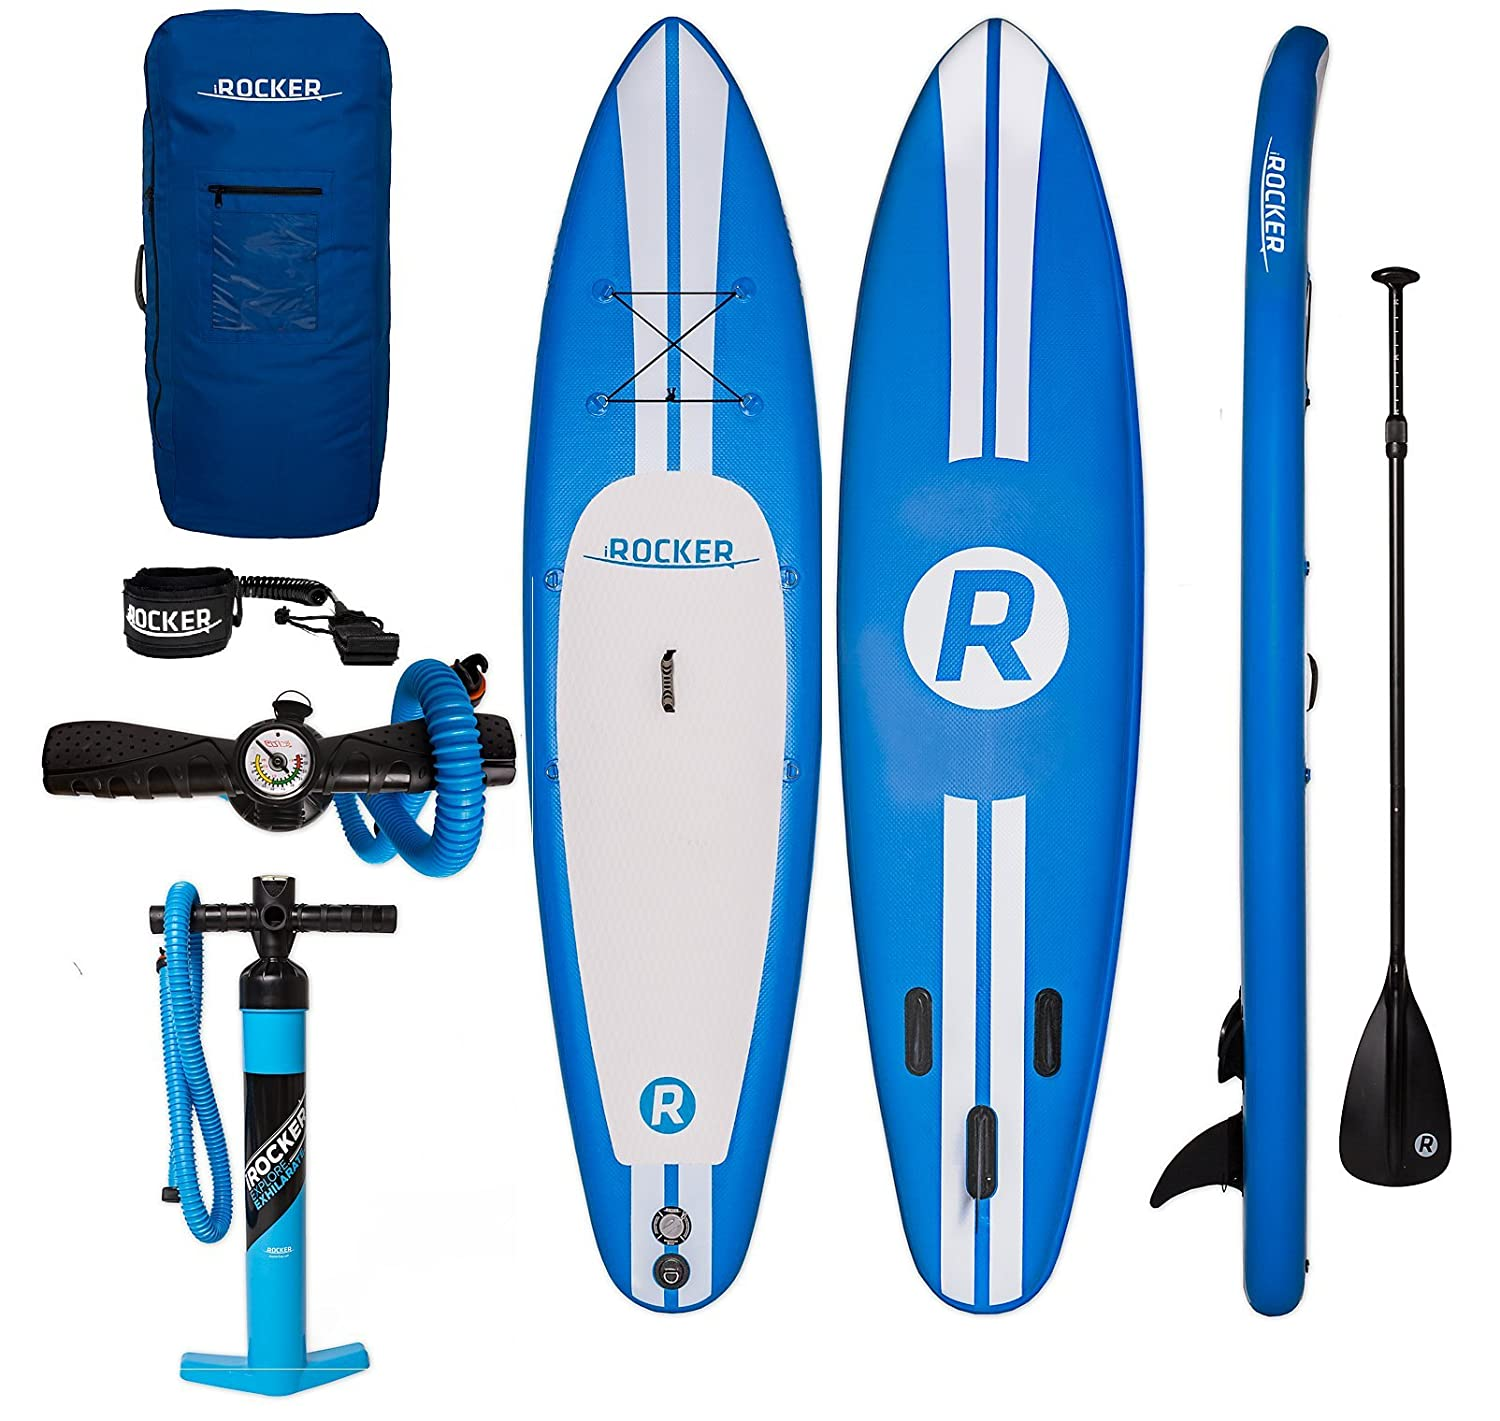 iRocker Tabla Inflable de Paddle Surf, 335x76x15cm Conjunto Sup